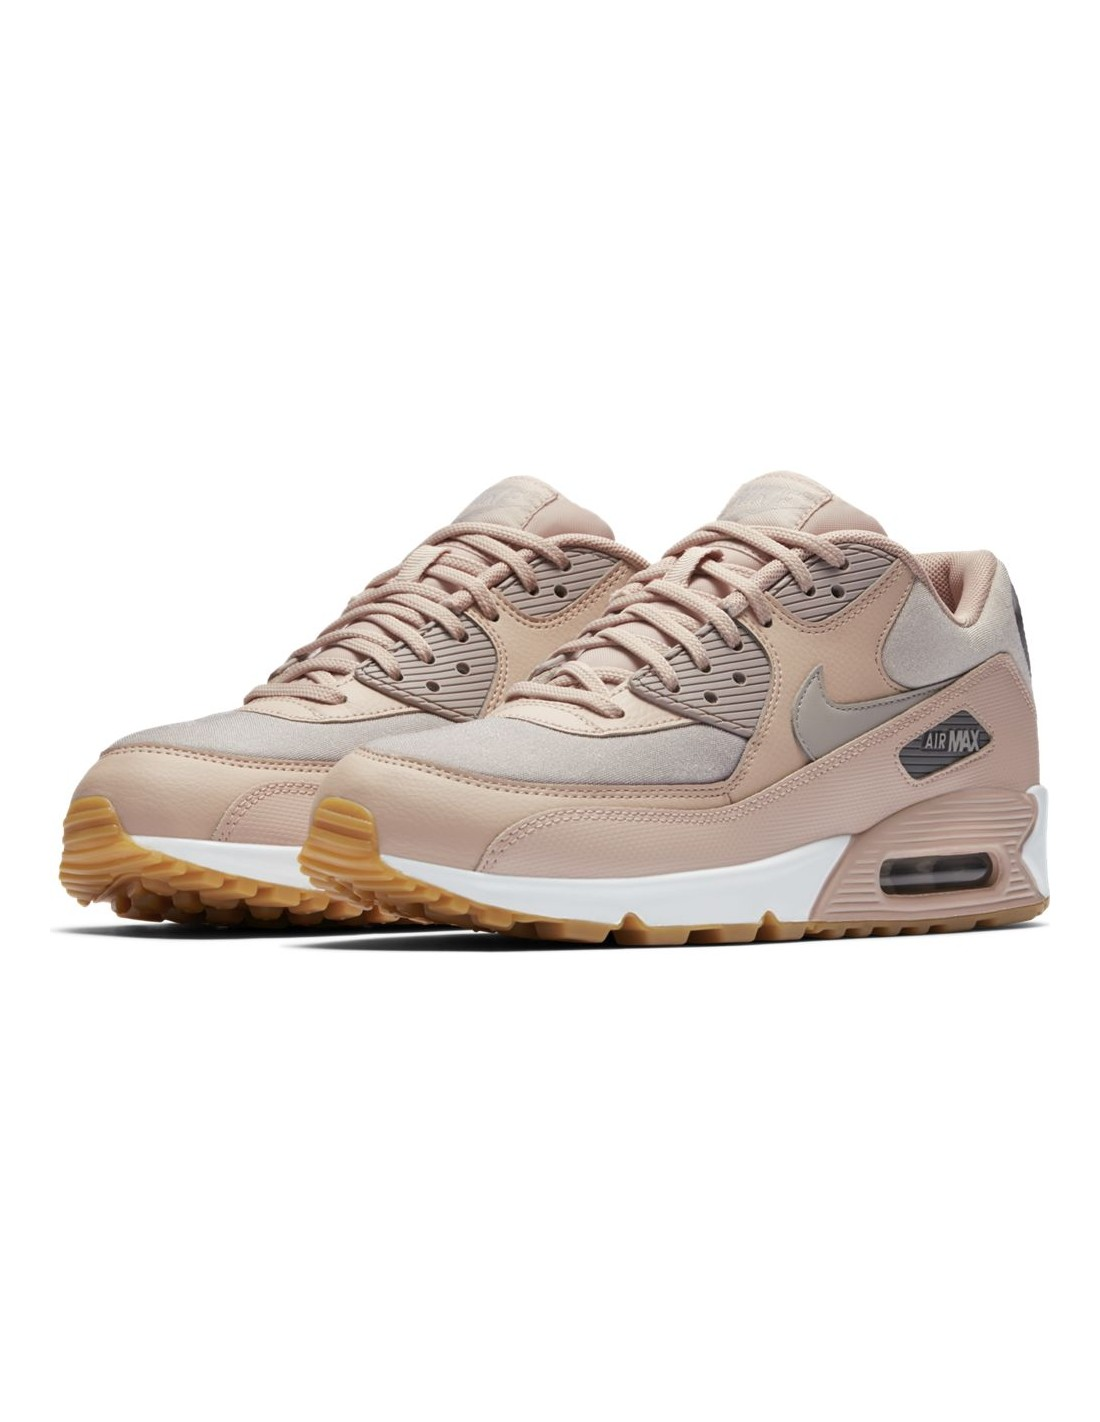 Sneakers NIKE - Women s nike air max 90 shoe 325213-206 PARTICLE ... 840c0929187a